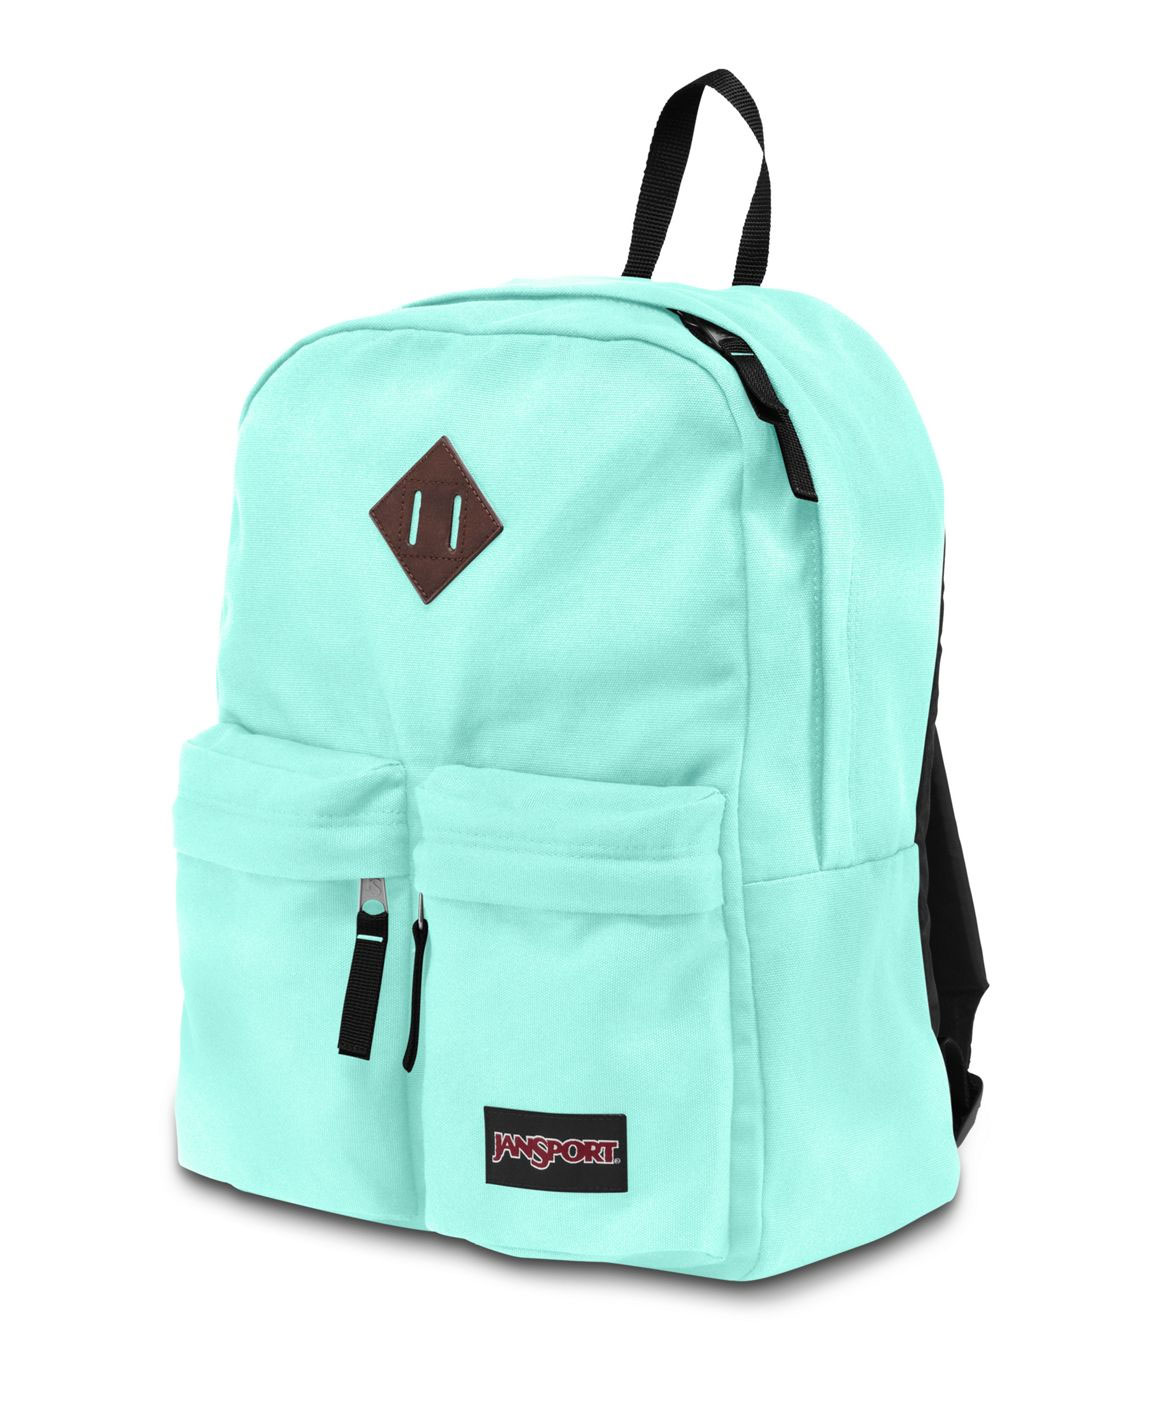 Where To Buy Jansport Backpacks 2vl4liBQ